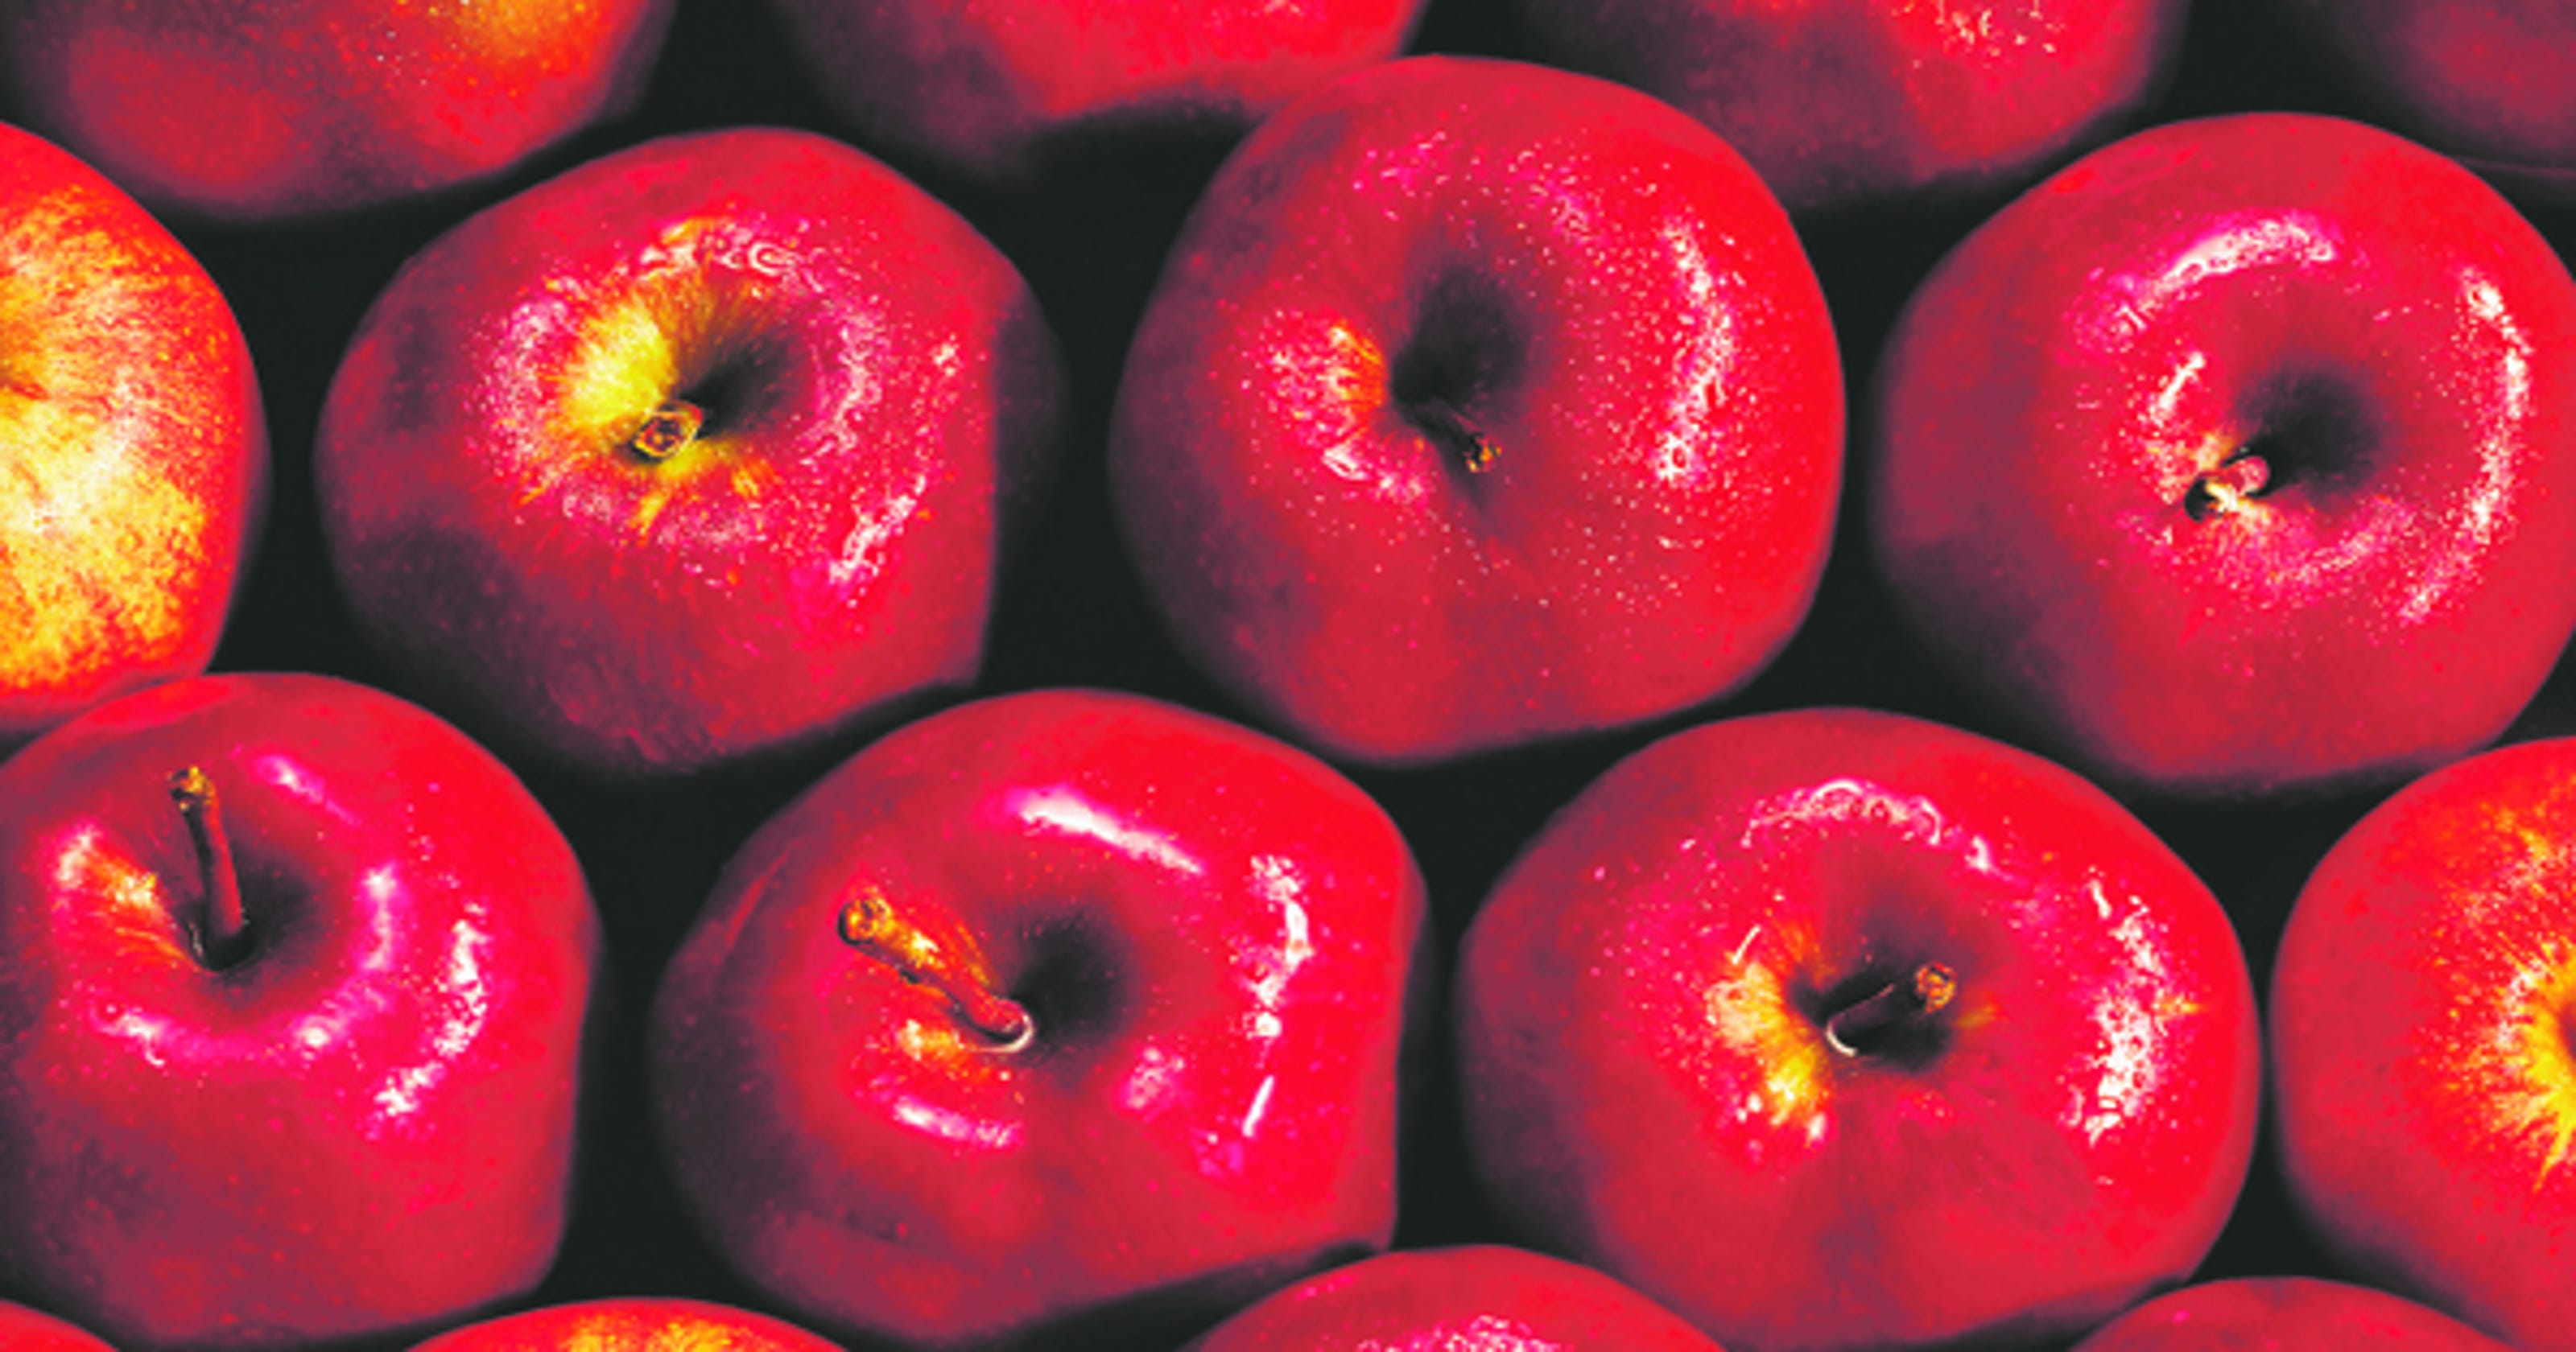 Iowa Is Famous For Corn Soybeans And The Red Delicious Apple